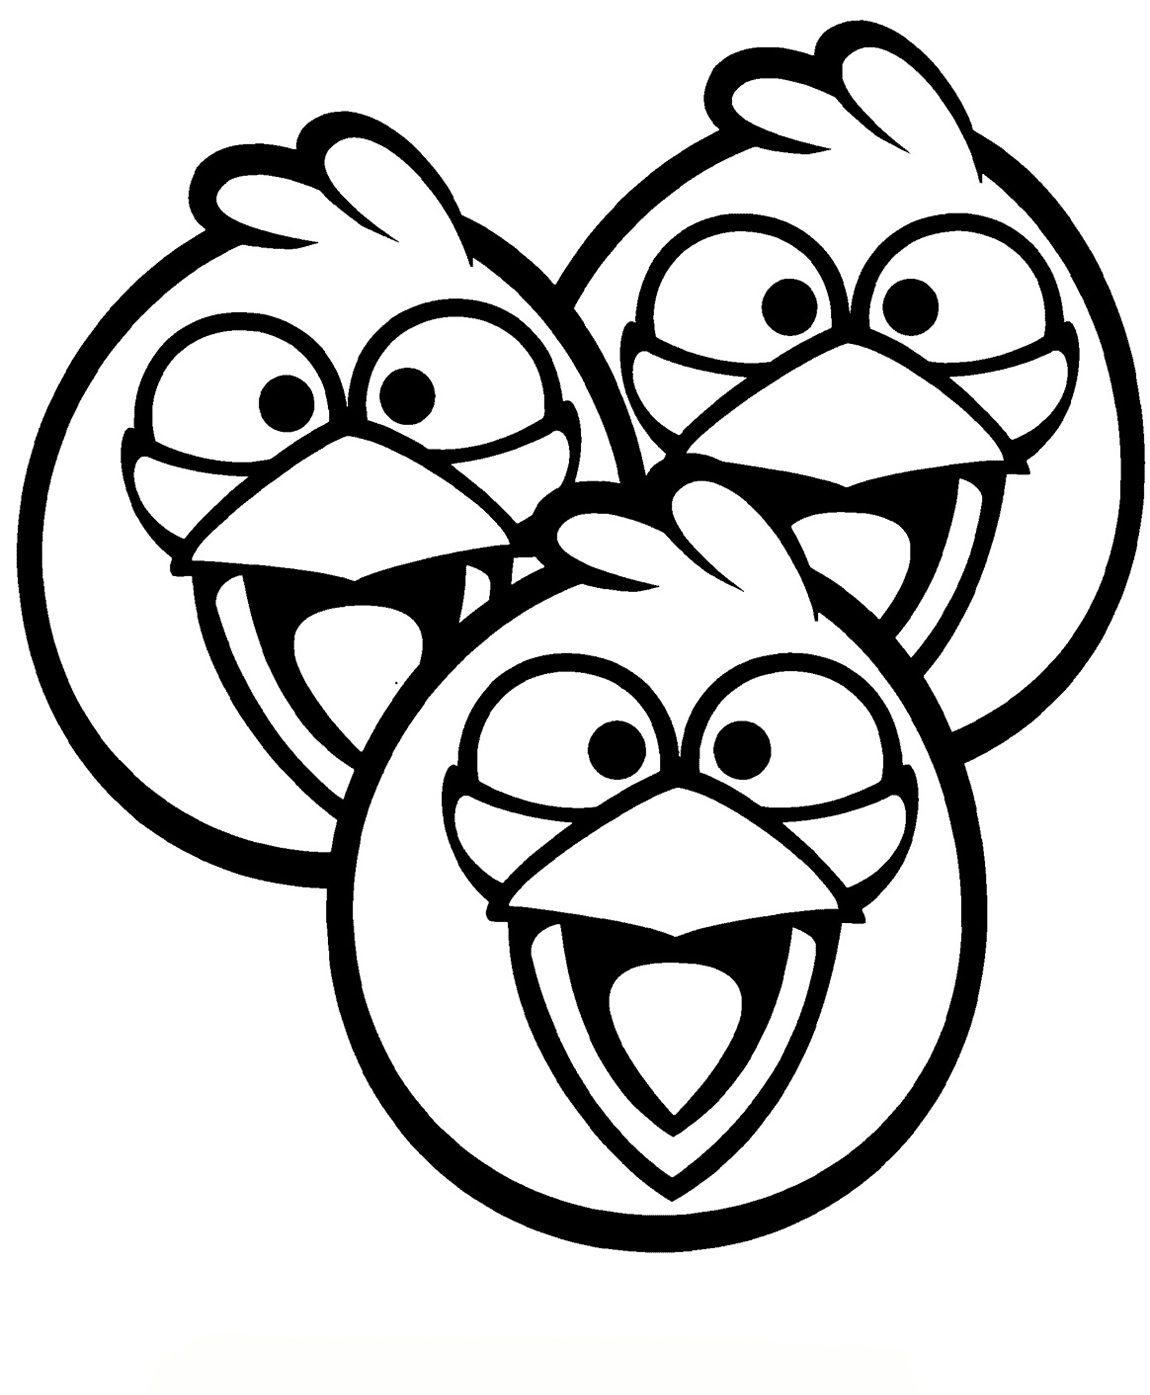 1150x1395 Angry Birds Printable Coloring Pages For Children